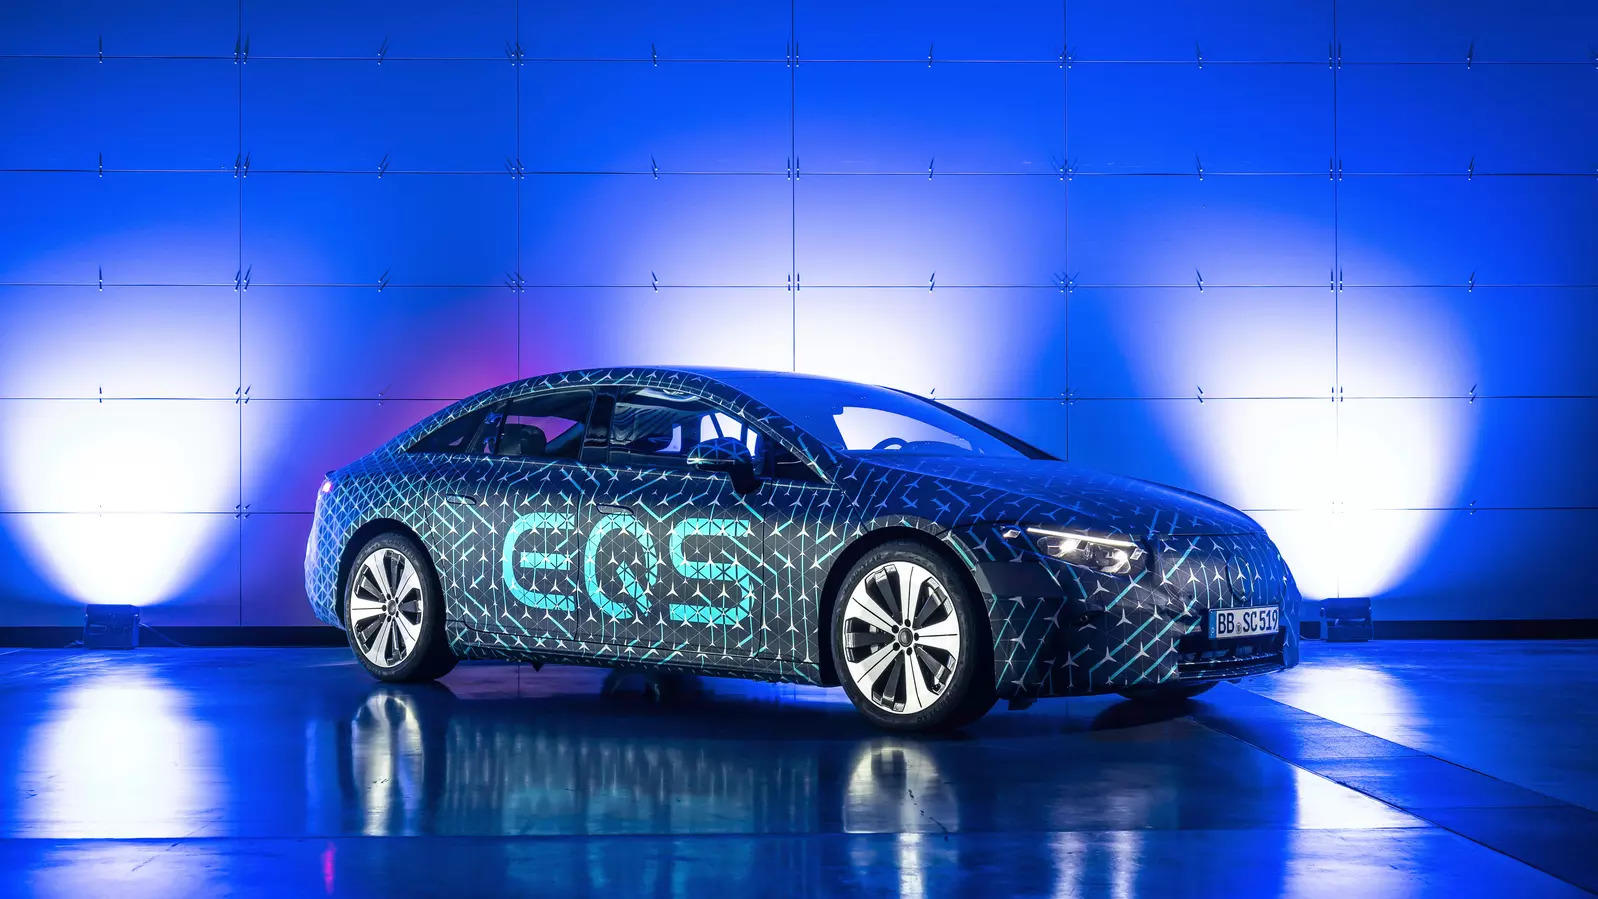 Mercedes rolls out luxury electric car in duel with Tesla